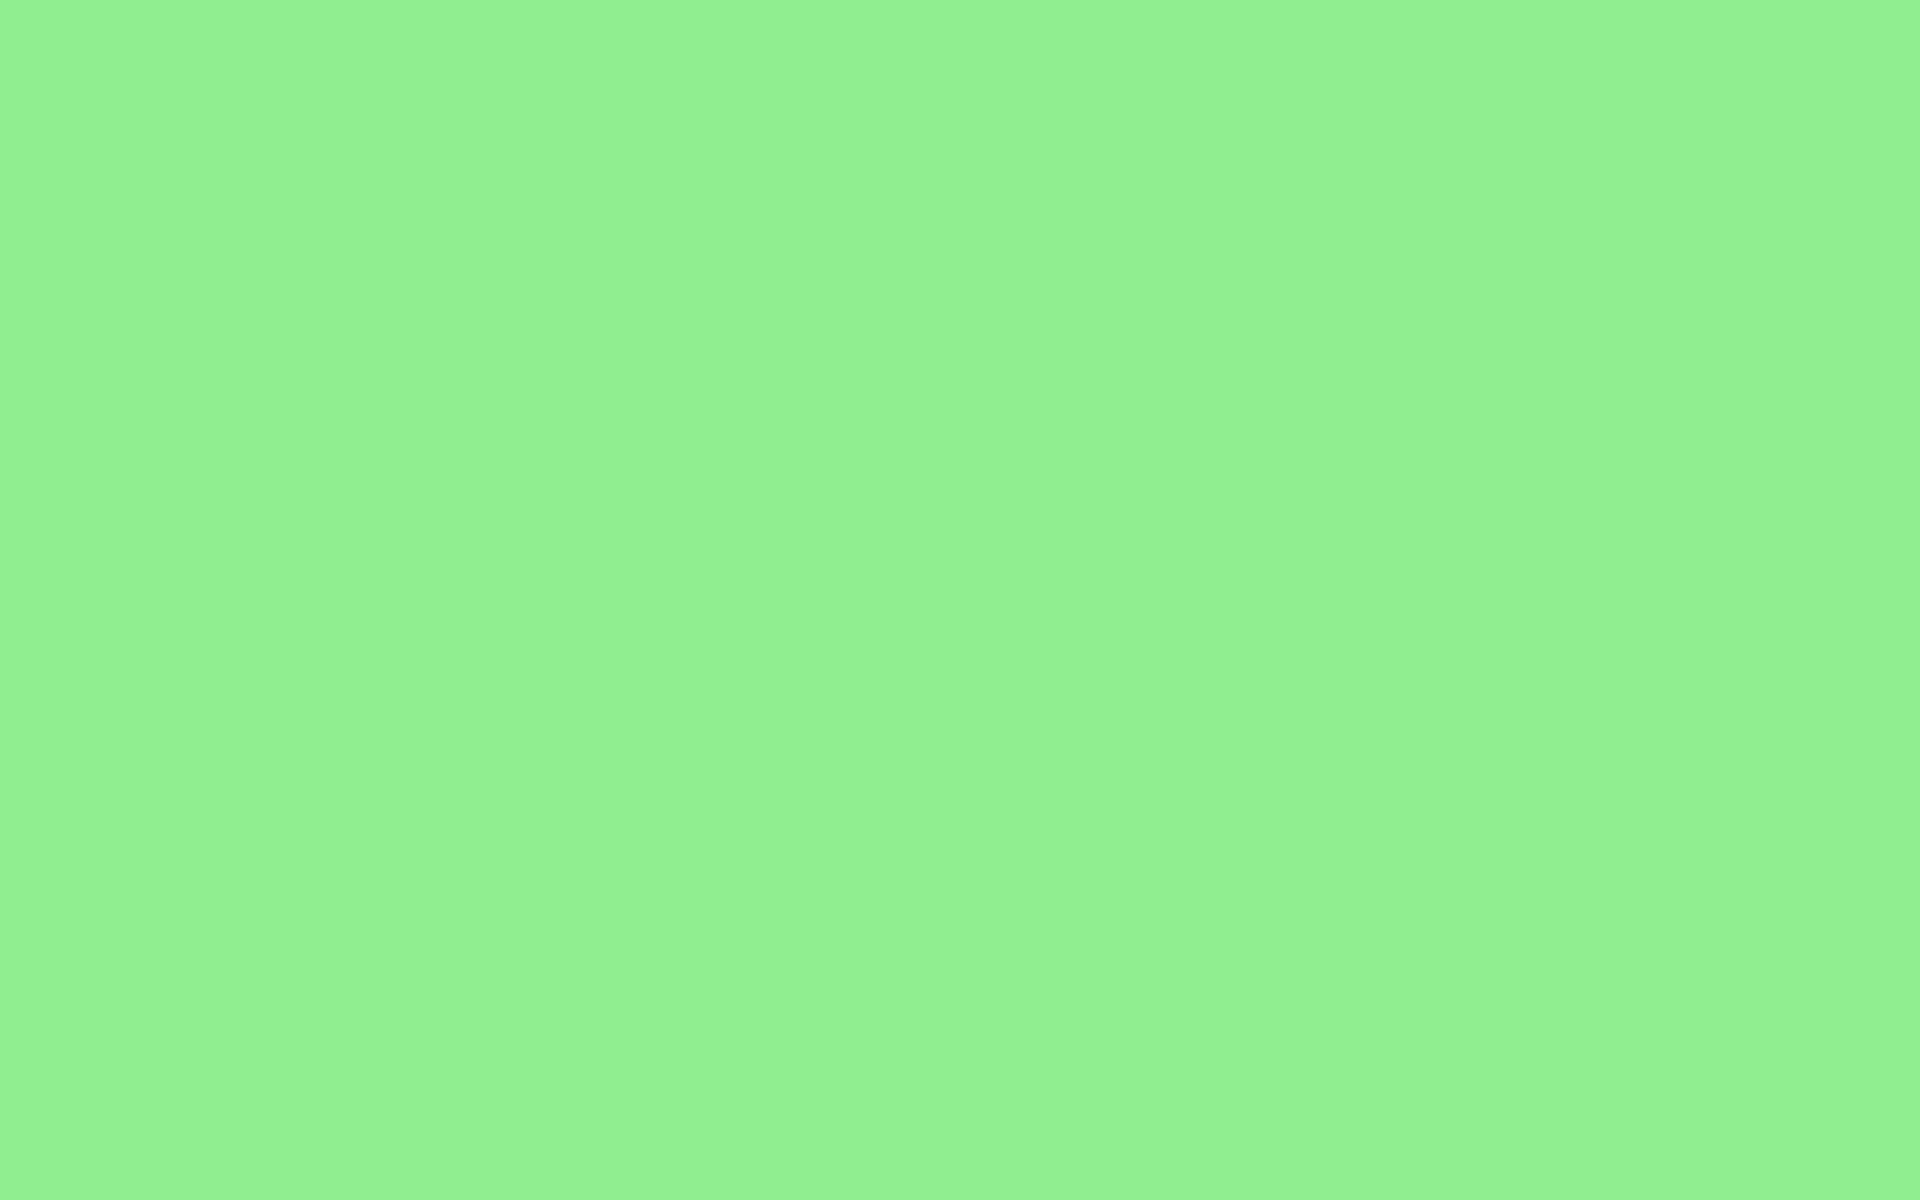 Light Green Background Related Keywords amp Suggestions 1920x1200